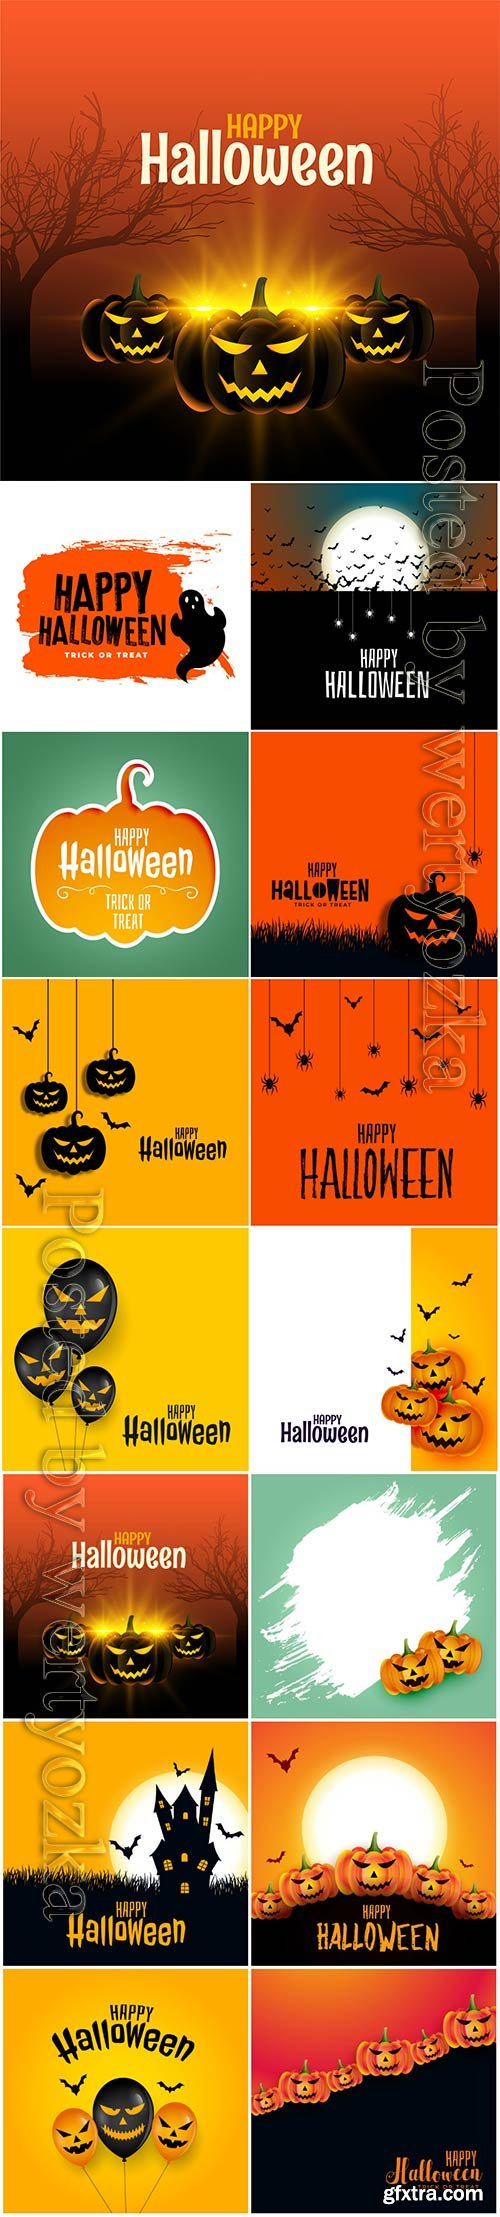 Happy halloween with scary pumpkins on spooky card